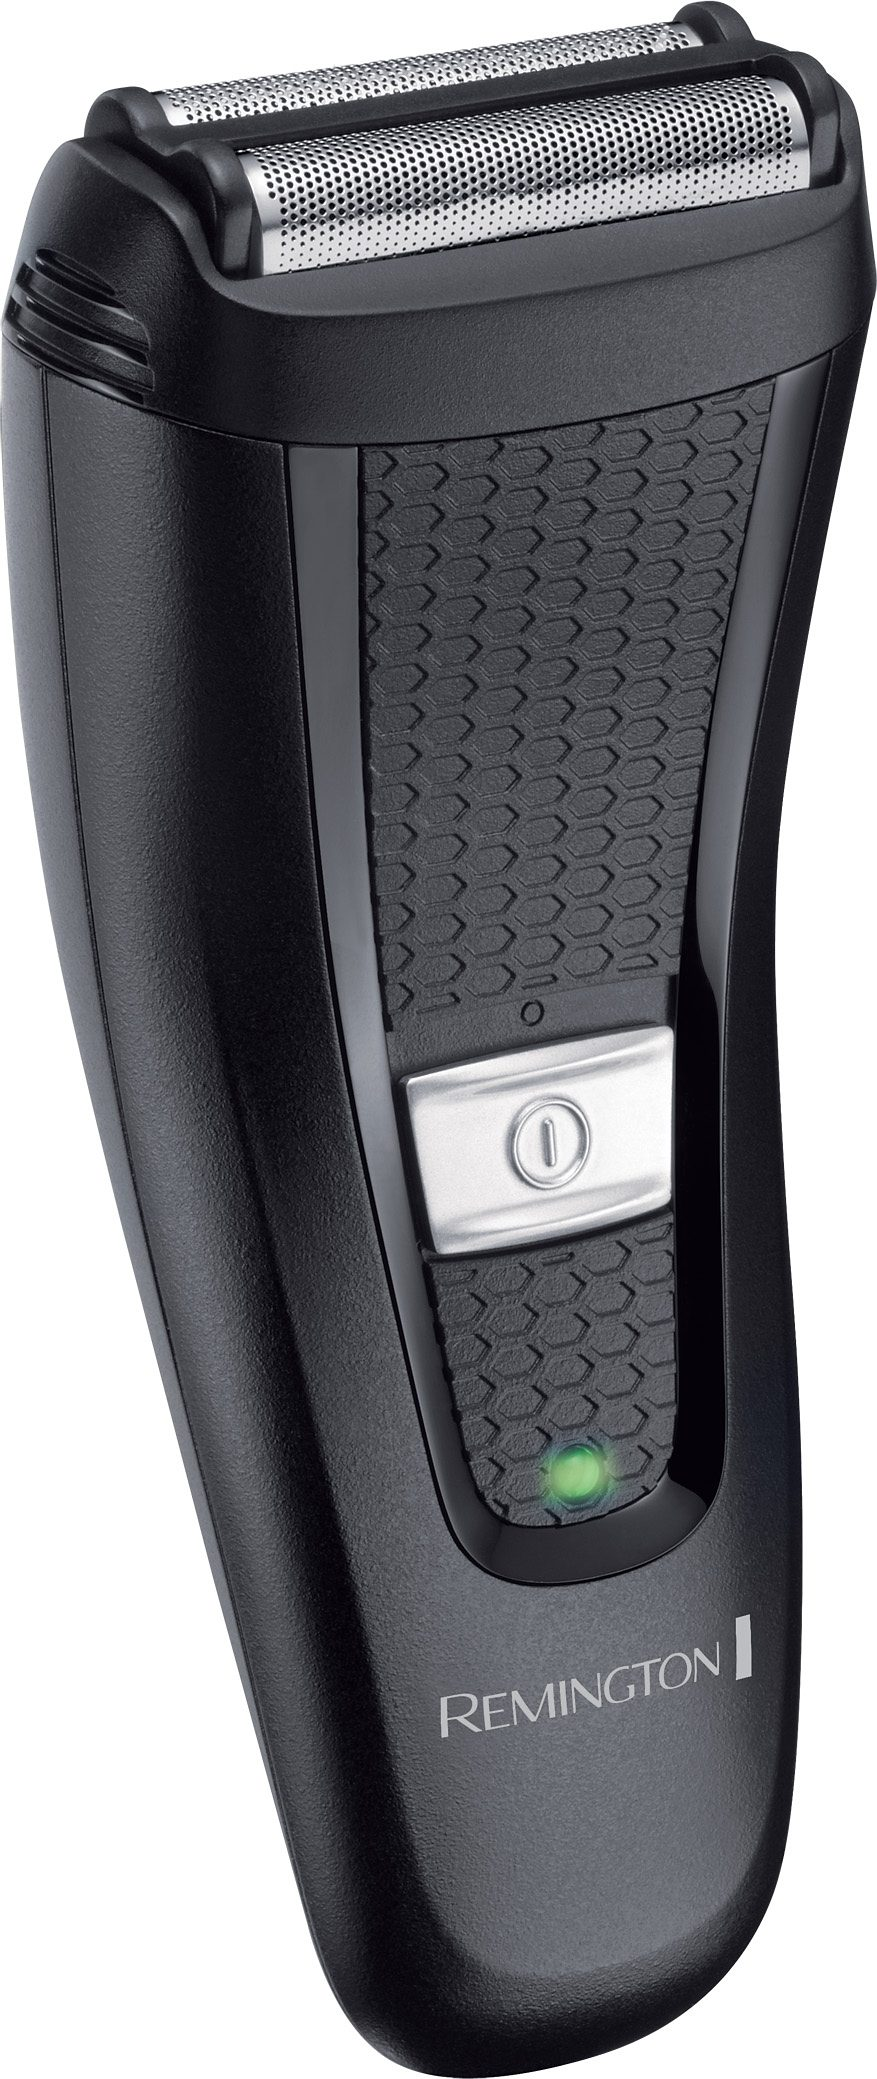 Remington, Folienrasierer Comfort Series PF7200, Akku